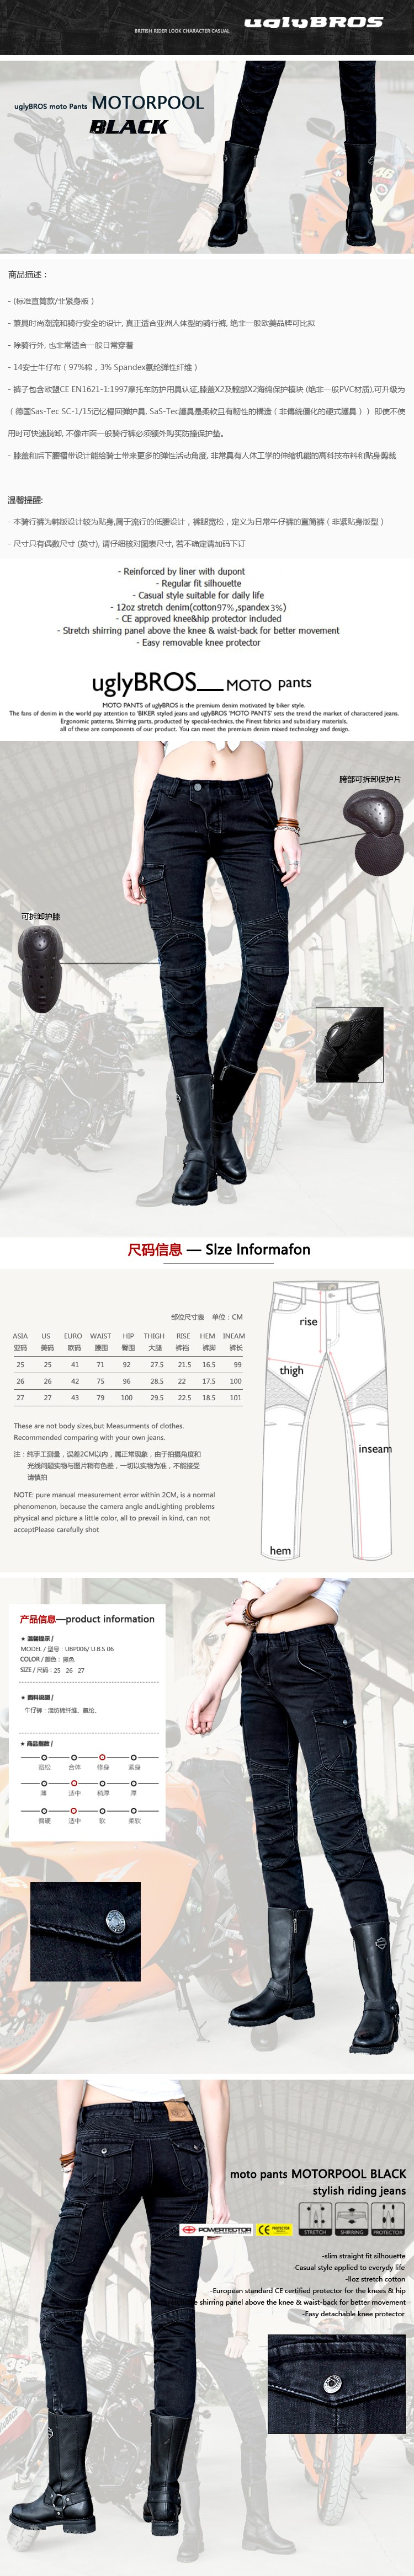 2016 The newest Uglybros MOTORPOOL UBS06 women jeans Riding a motorcycle jeans trousers women jeans pants black